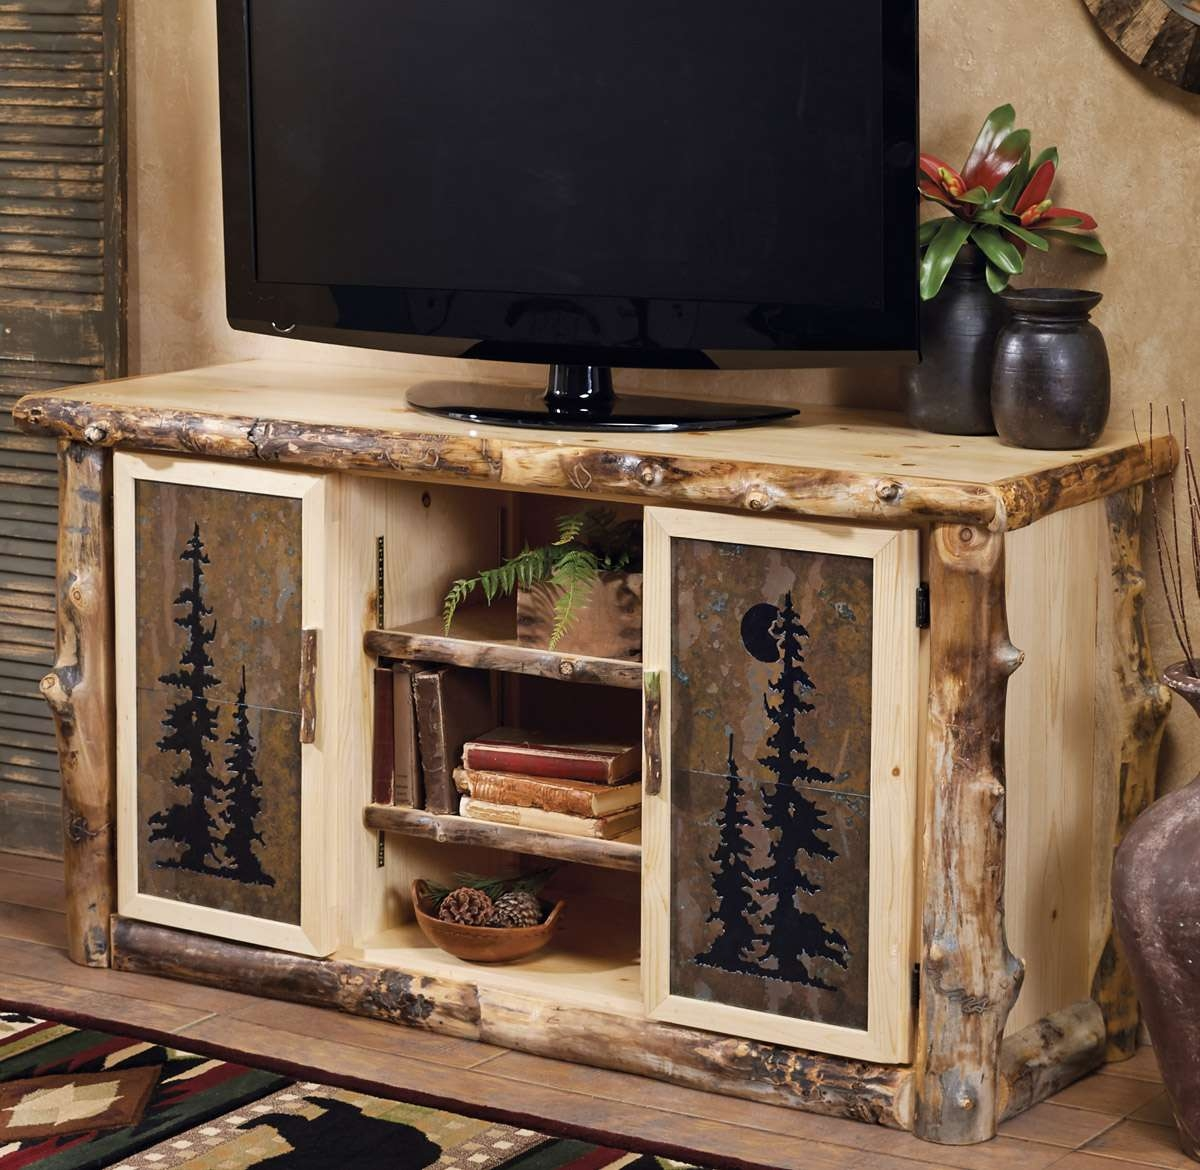 Surprising Inspiration Rustic Tv Cabinet Simple Decoration Rustic Inside Rustic Pine Tv Cabinets (View 17 of 20)